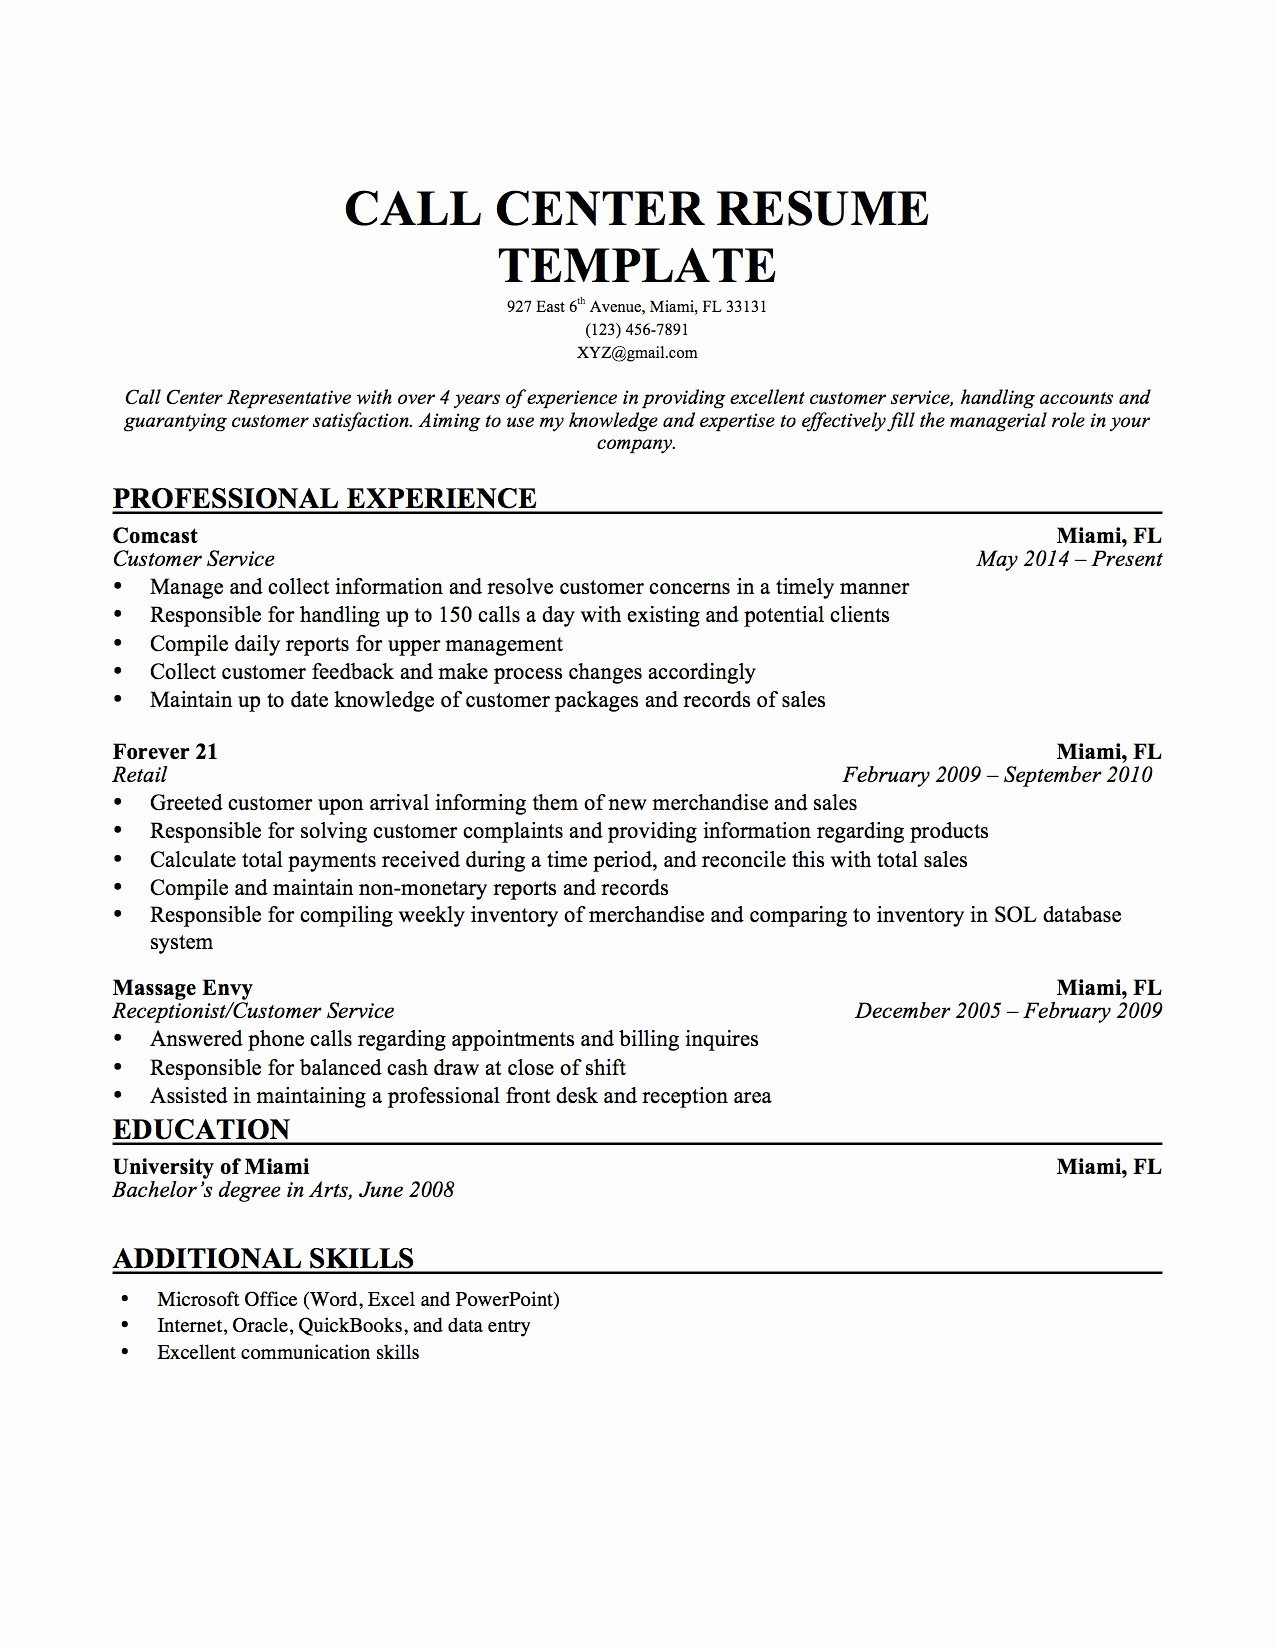 Inbound Call Center Job Description for Resume - Job Description Call Center Best Call Center Resume Skills Best